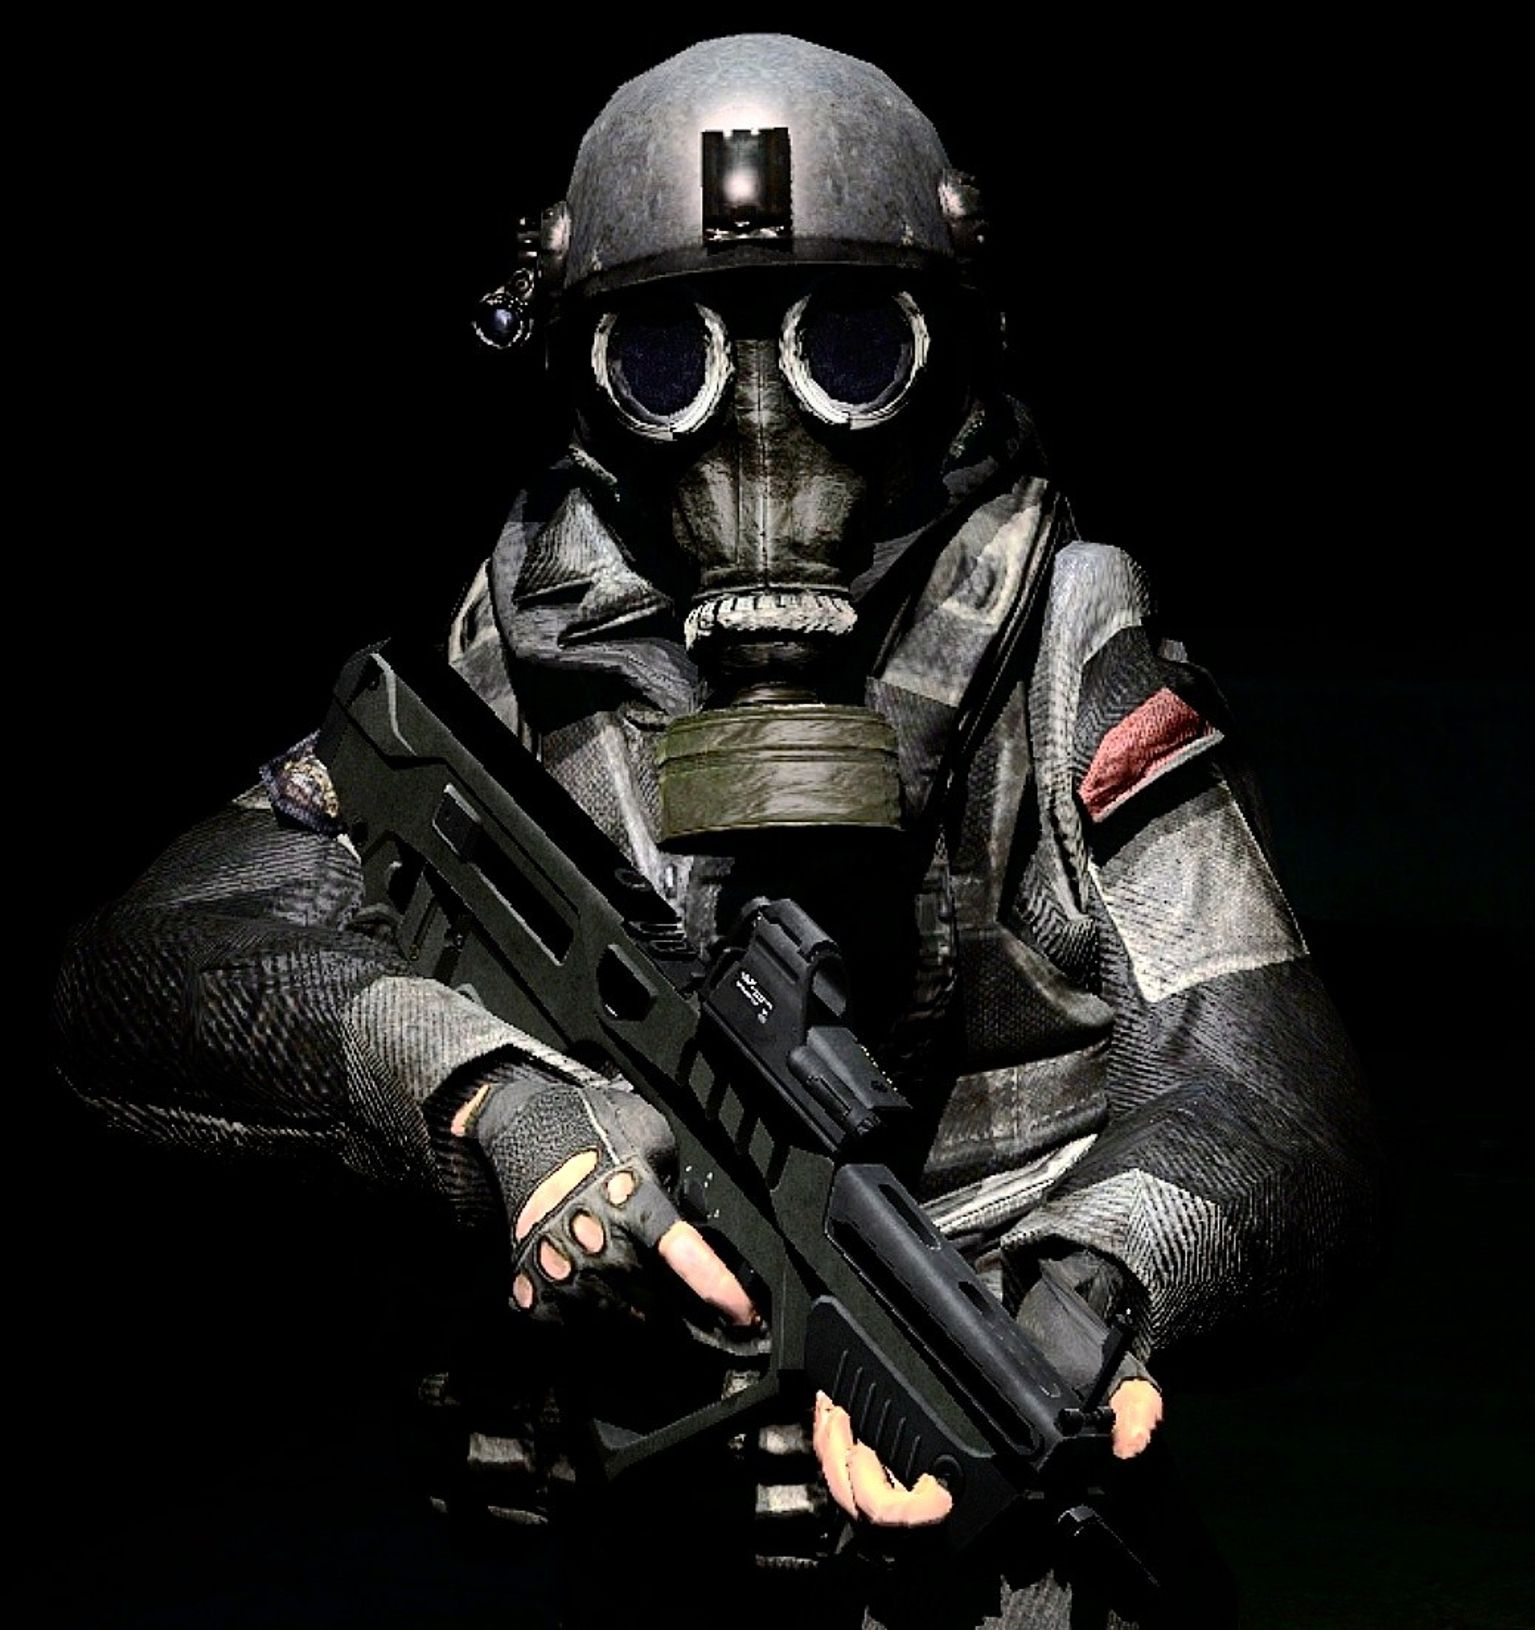 Fear The Gas Mask By ~LordHayabusa357 On DeviantART